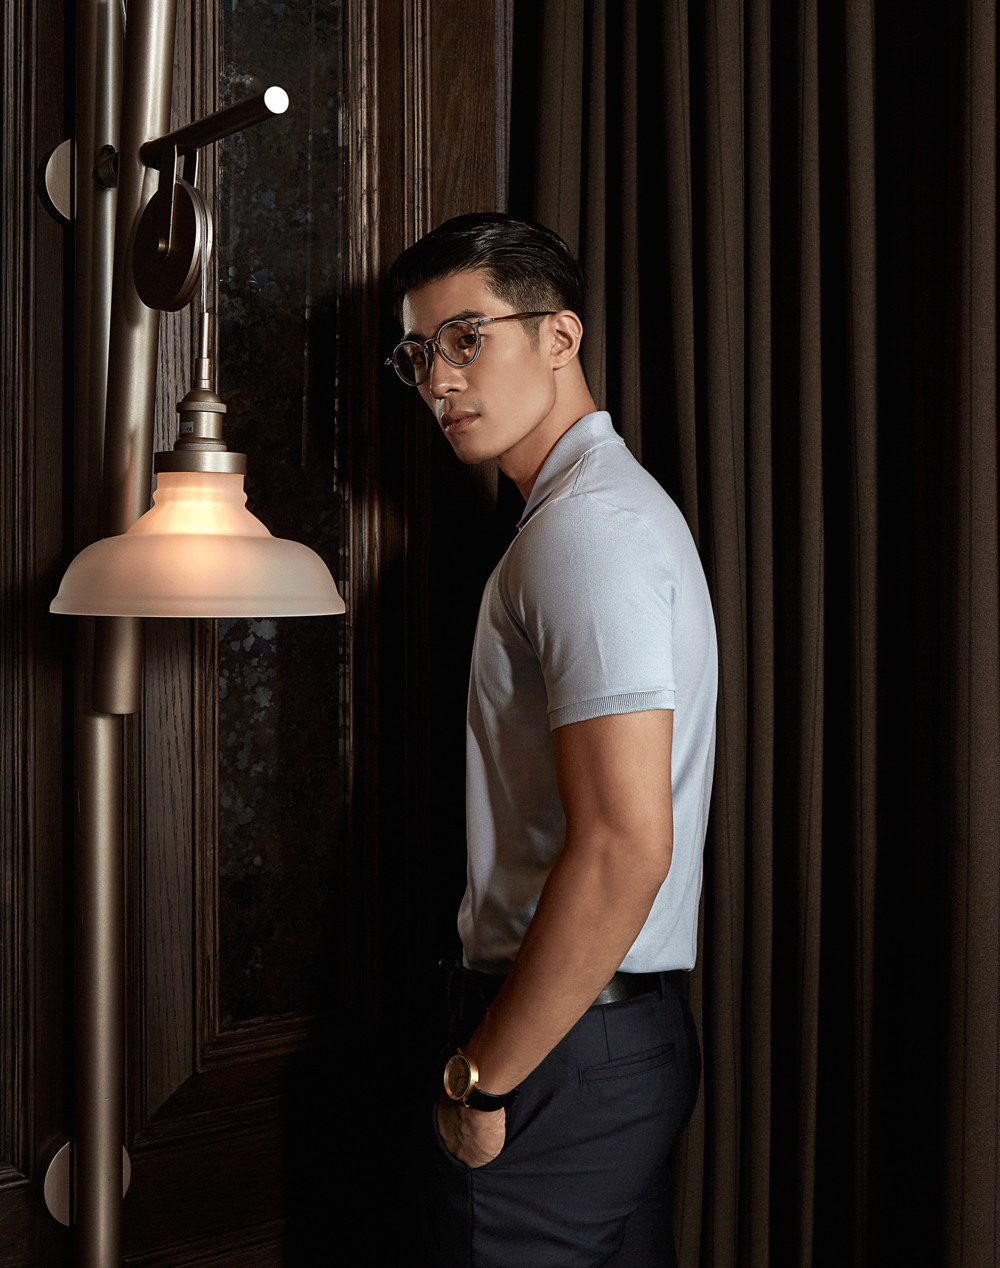 clothes : MARBLE & WOOD / eyeglasses : TAVAT / watch : FORREST